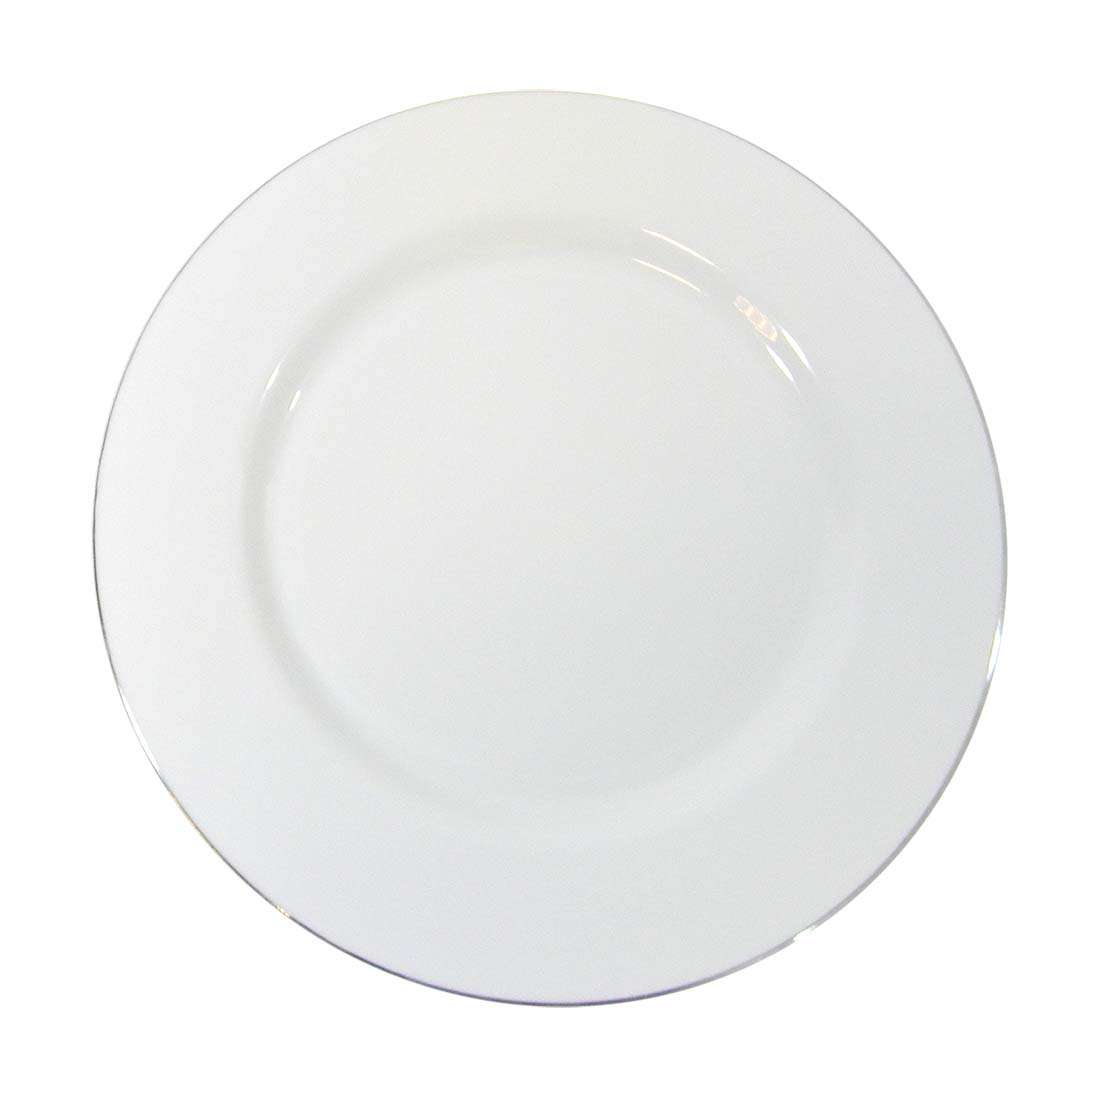 View CROWN DINNERWARE LUNCH PLATE 10 PK 9 INCH DISTINCTIVE COLLECTION WHITE/SILVER